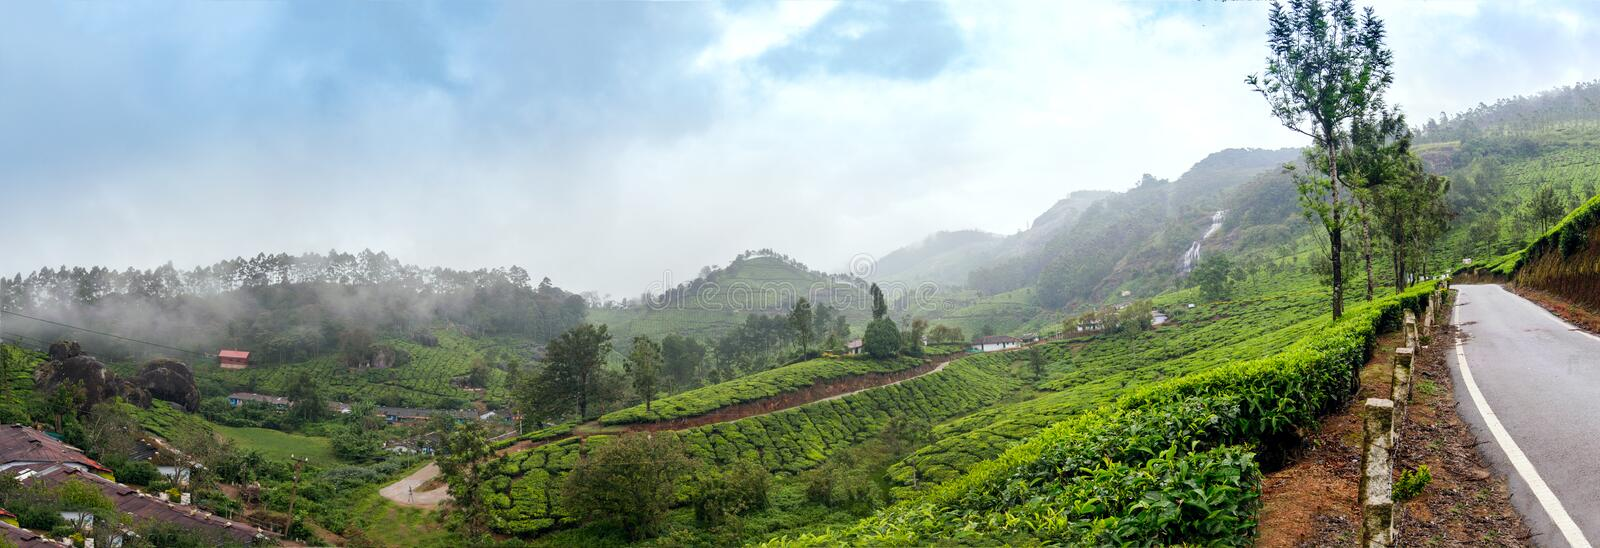 Panoramic view in Munnar in western Ghats, Kerala royalty free stock photo